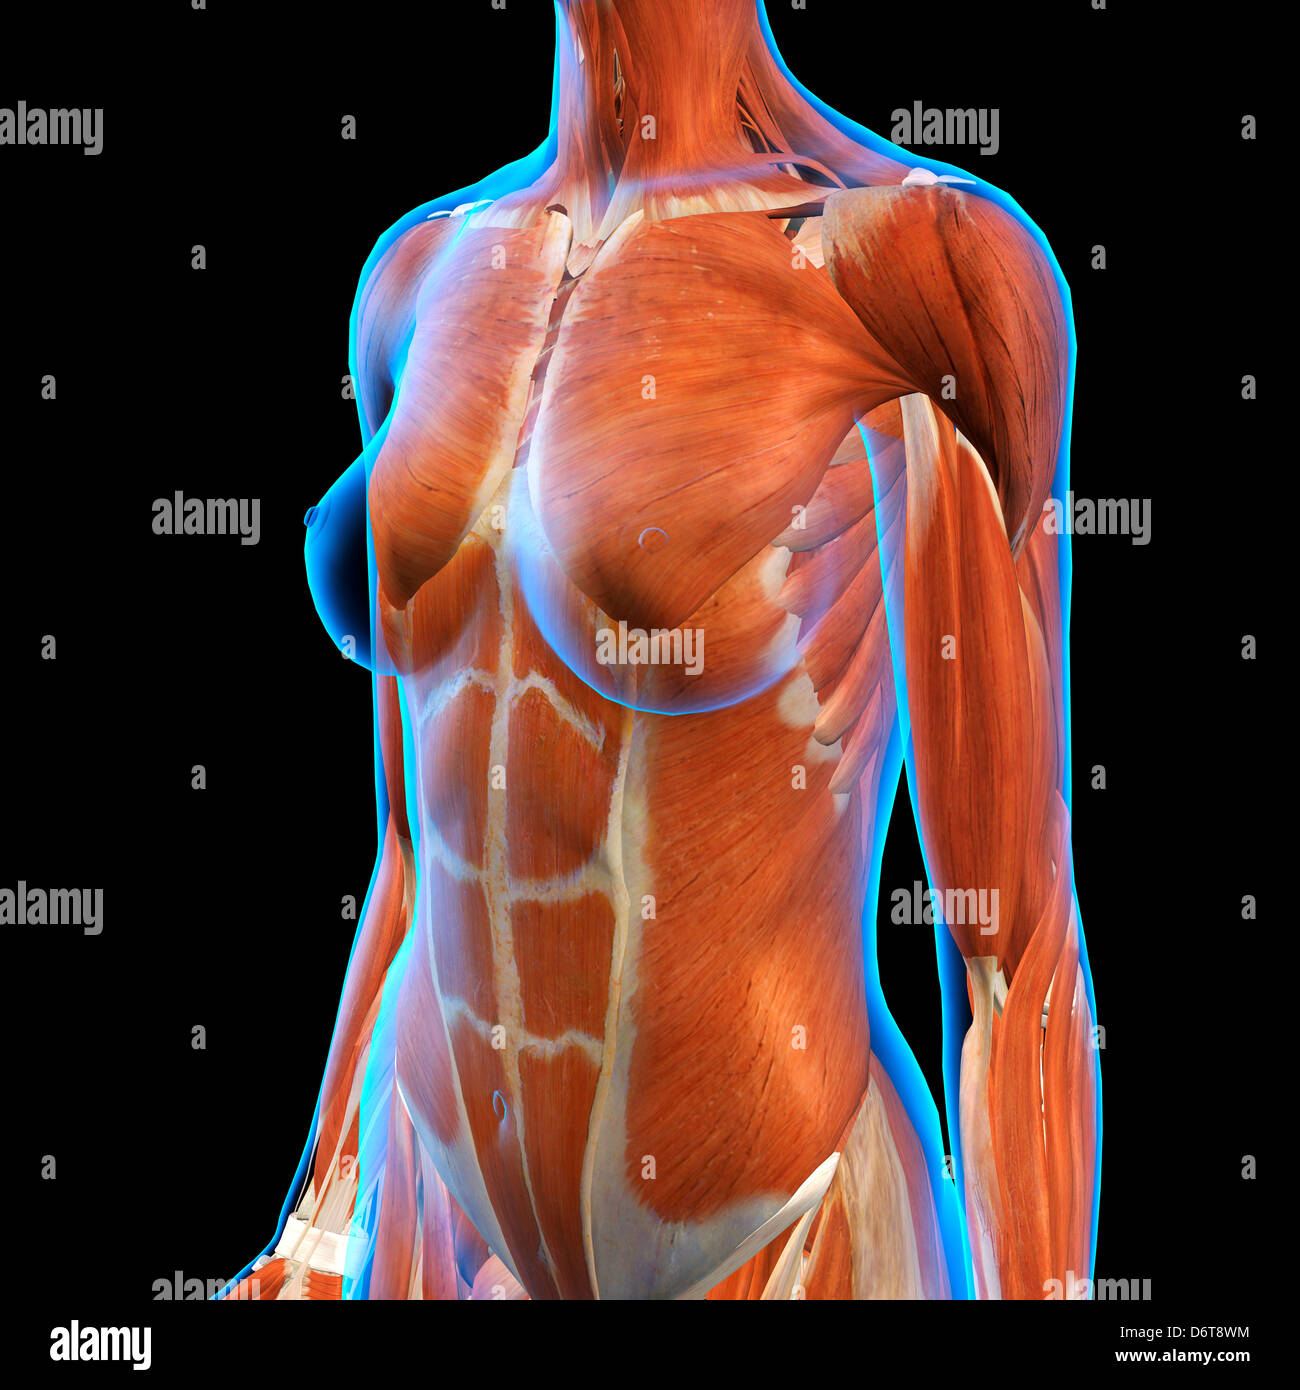 Female Chest Abdominal Muscles Anatomy In Blue X Ray Outline Full